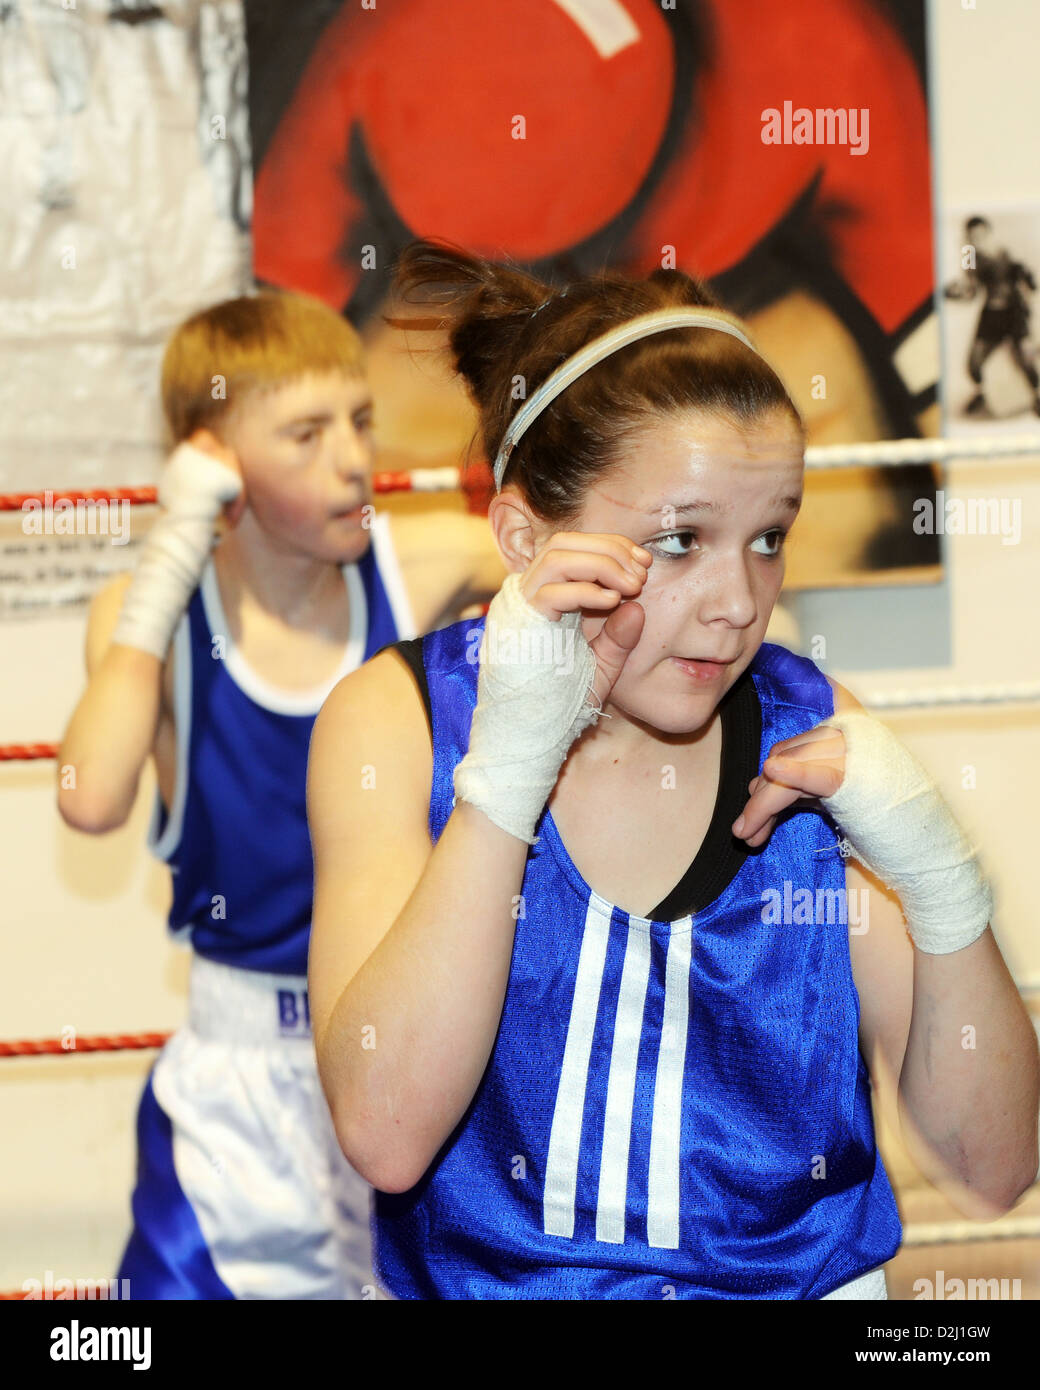 Boxing Club South Yorkshire UK - Stock Image